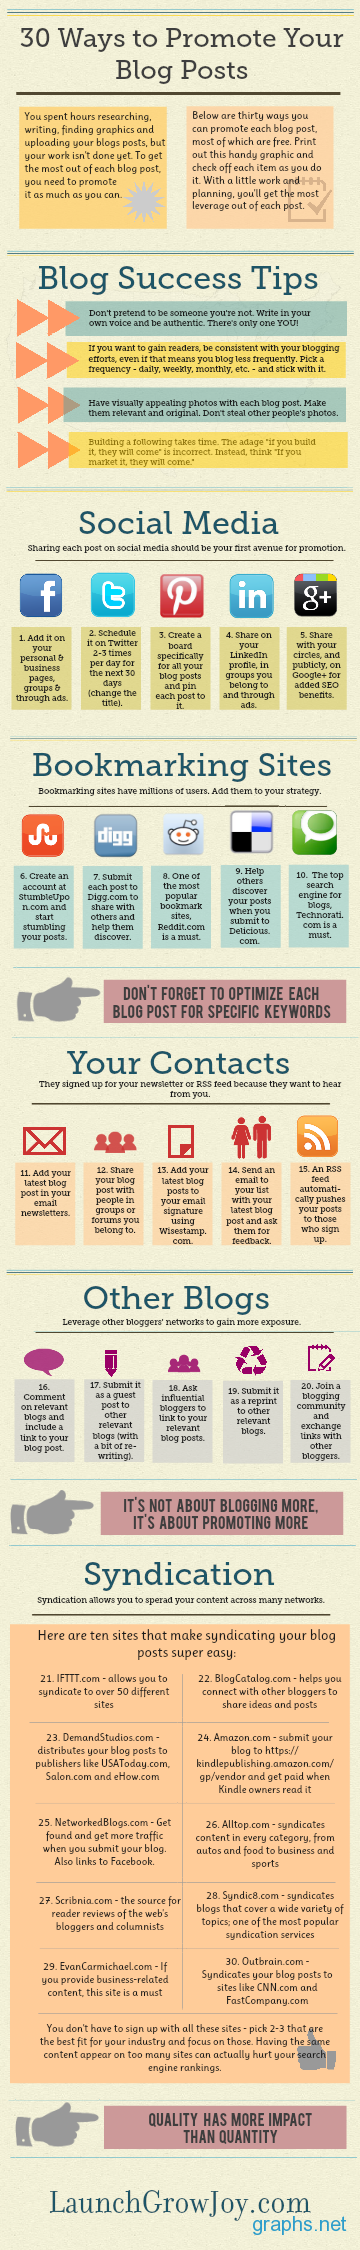 Top 30 Ways To Promote Blog Posts